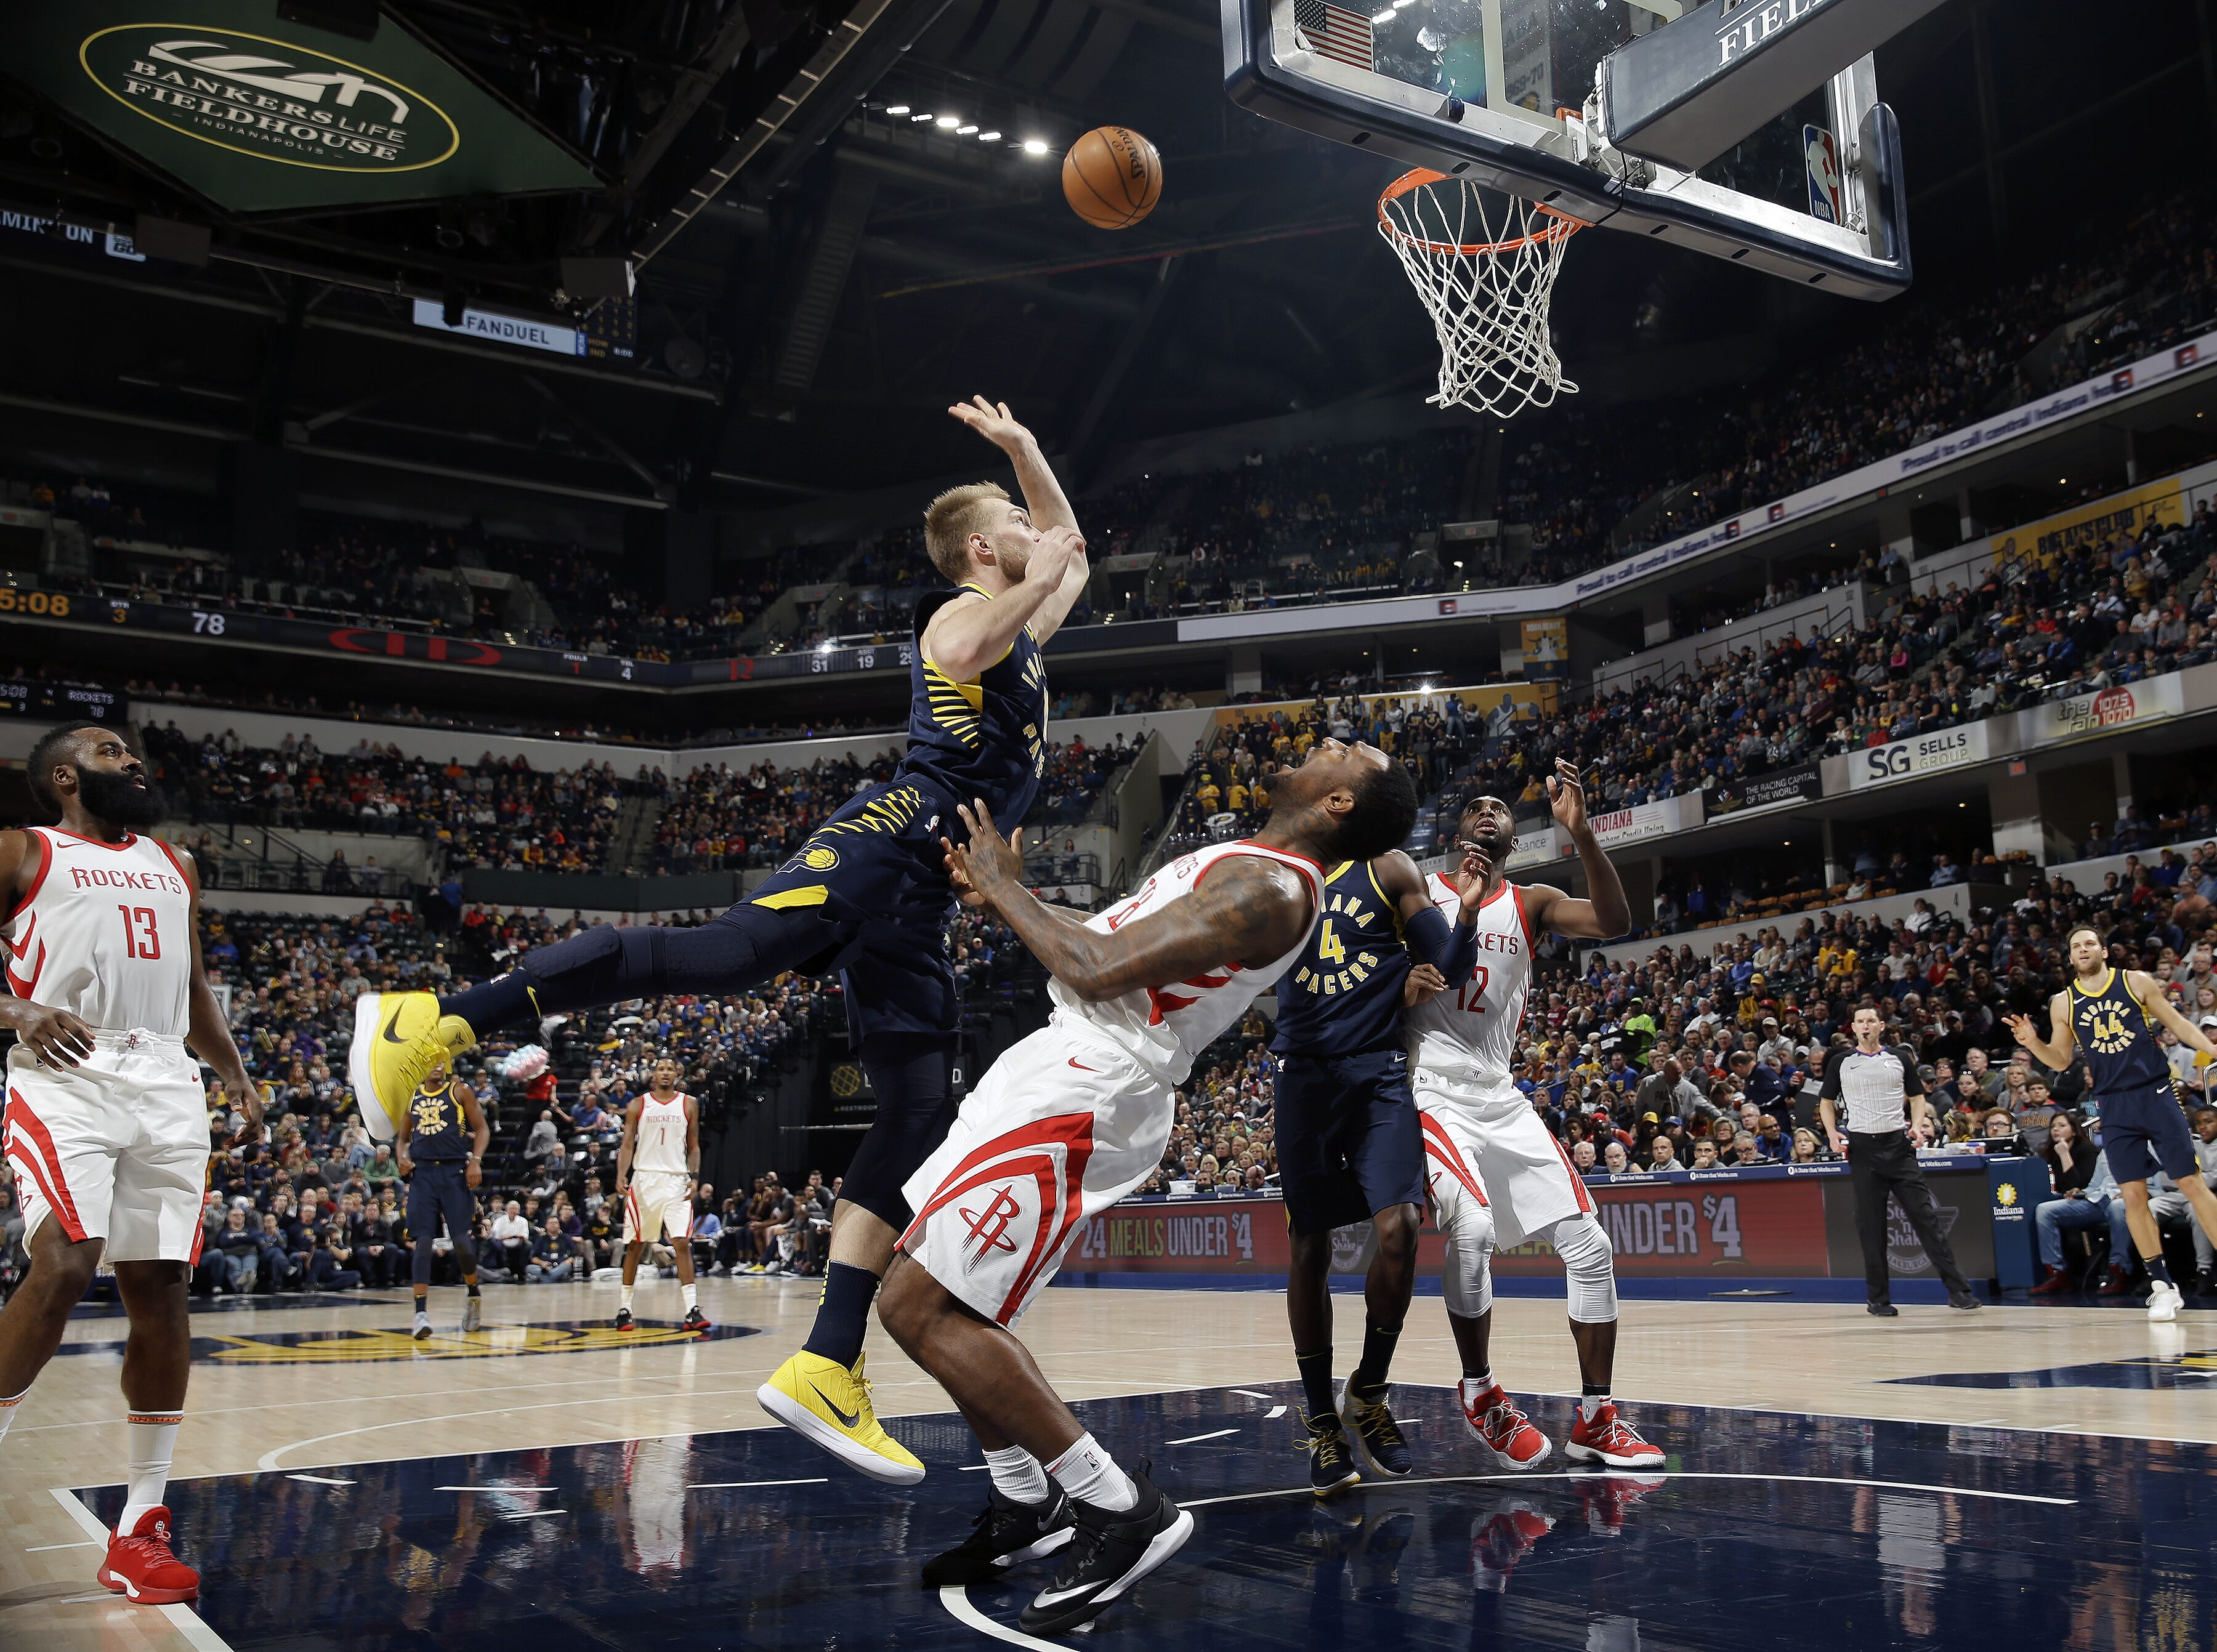 873383868-houston-rockets-v-indiana-pacers.jpg